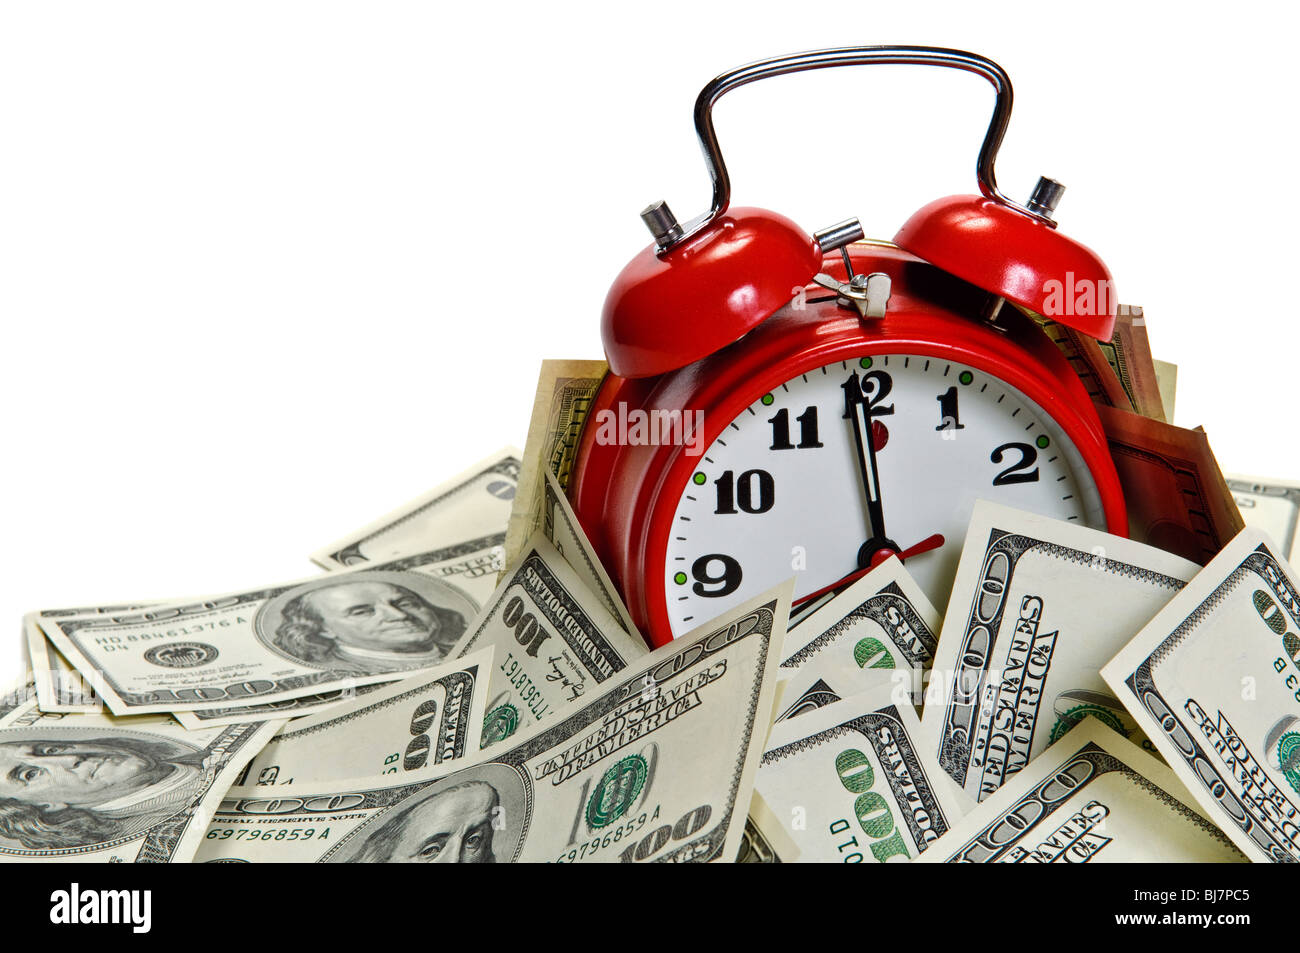 Retro styled alarm clock covered pile of money isolated on white. Time is money concept - Stock Image